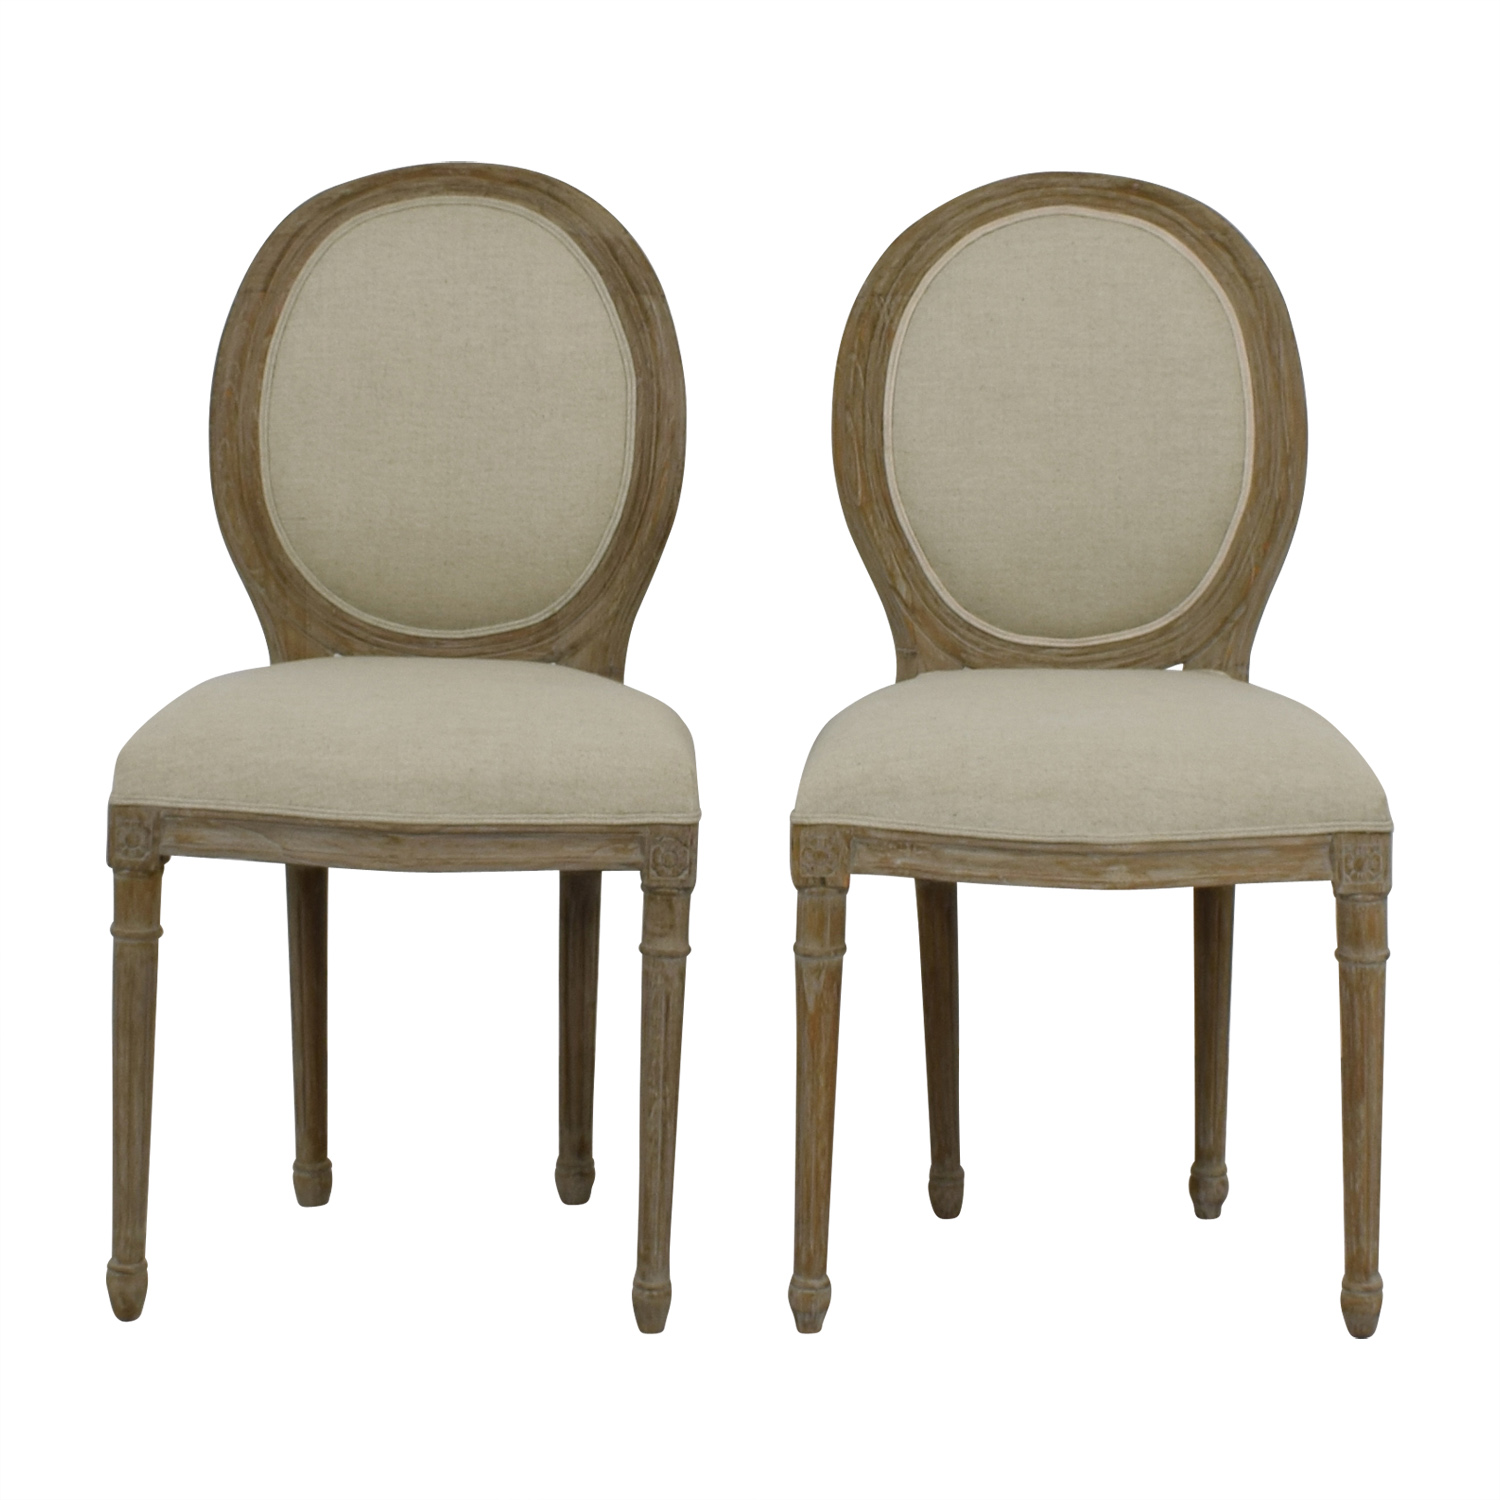 Furniture Masters Furniture Masters Beige Upholstered Dining Chairs price